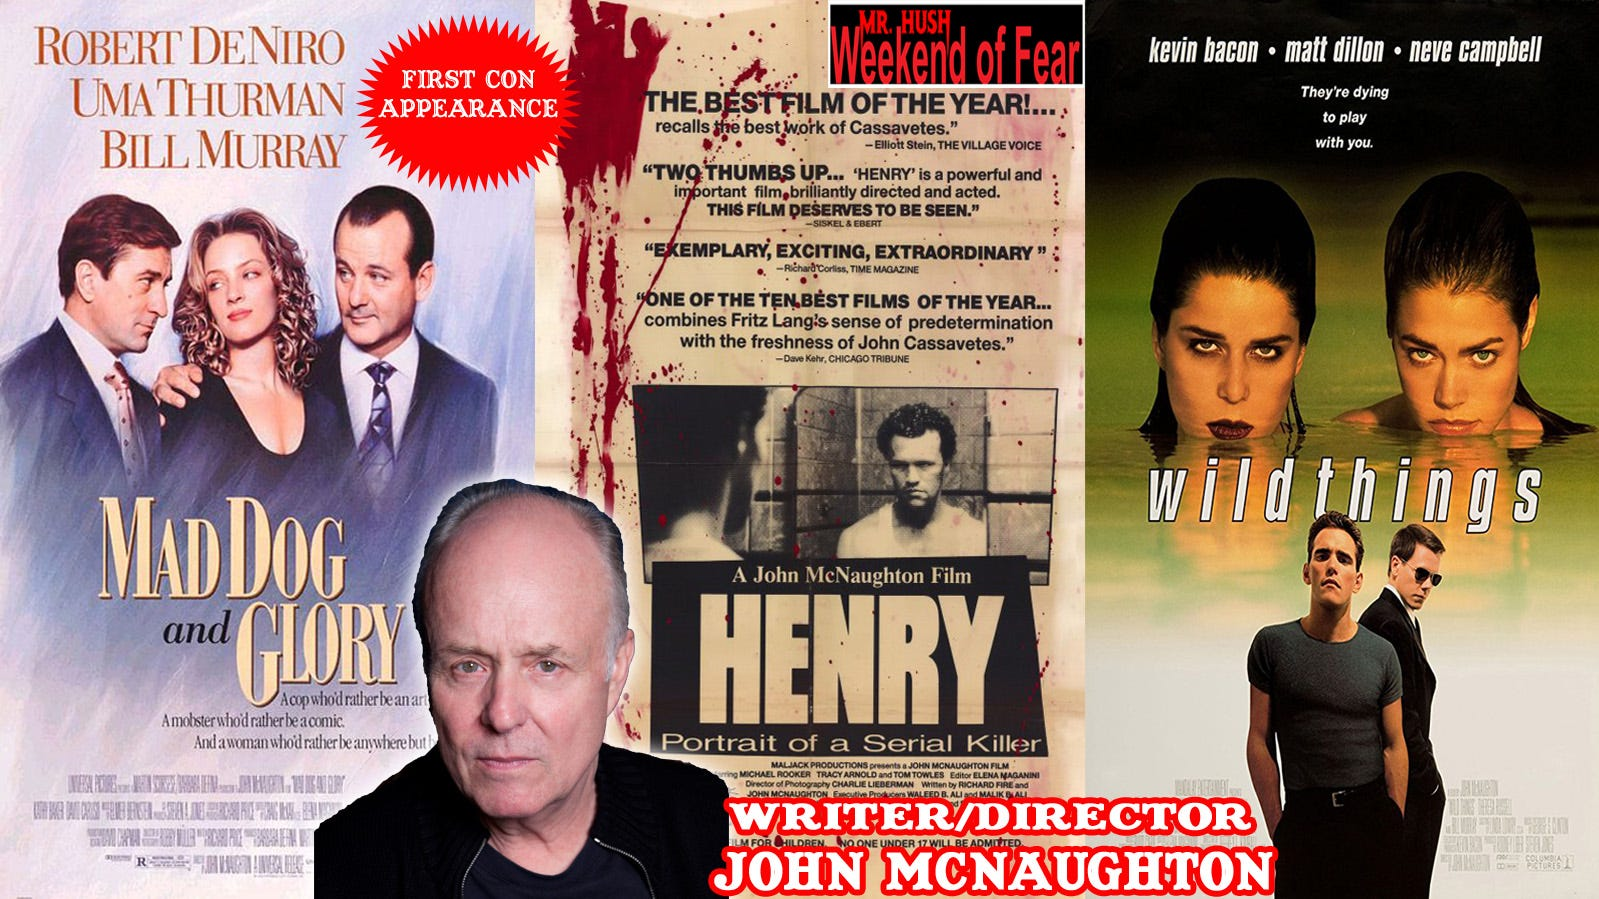 """Director John McNaughton, who made his name with the psychological horror film """"Henry: Portrait of a Serial Killer,"""" is one of the guests who will attend the Mr. Hush Weekend of Fear at Wild West City in Byram Township from October 19 through 21.  In addition to celebrities from the worlds of horror and sci-fi, the event includes such family-friendly attractions as zombie cowboys, a haunted train ride, and a Halloween costume parade."""